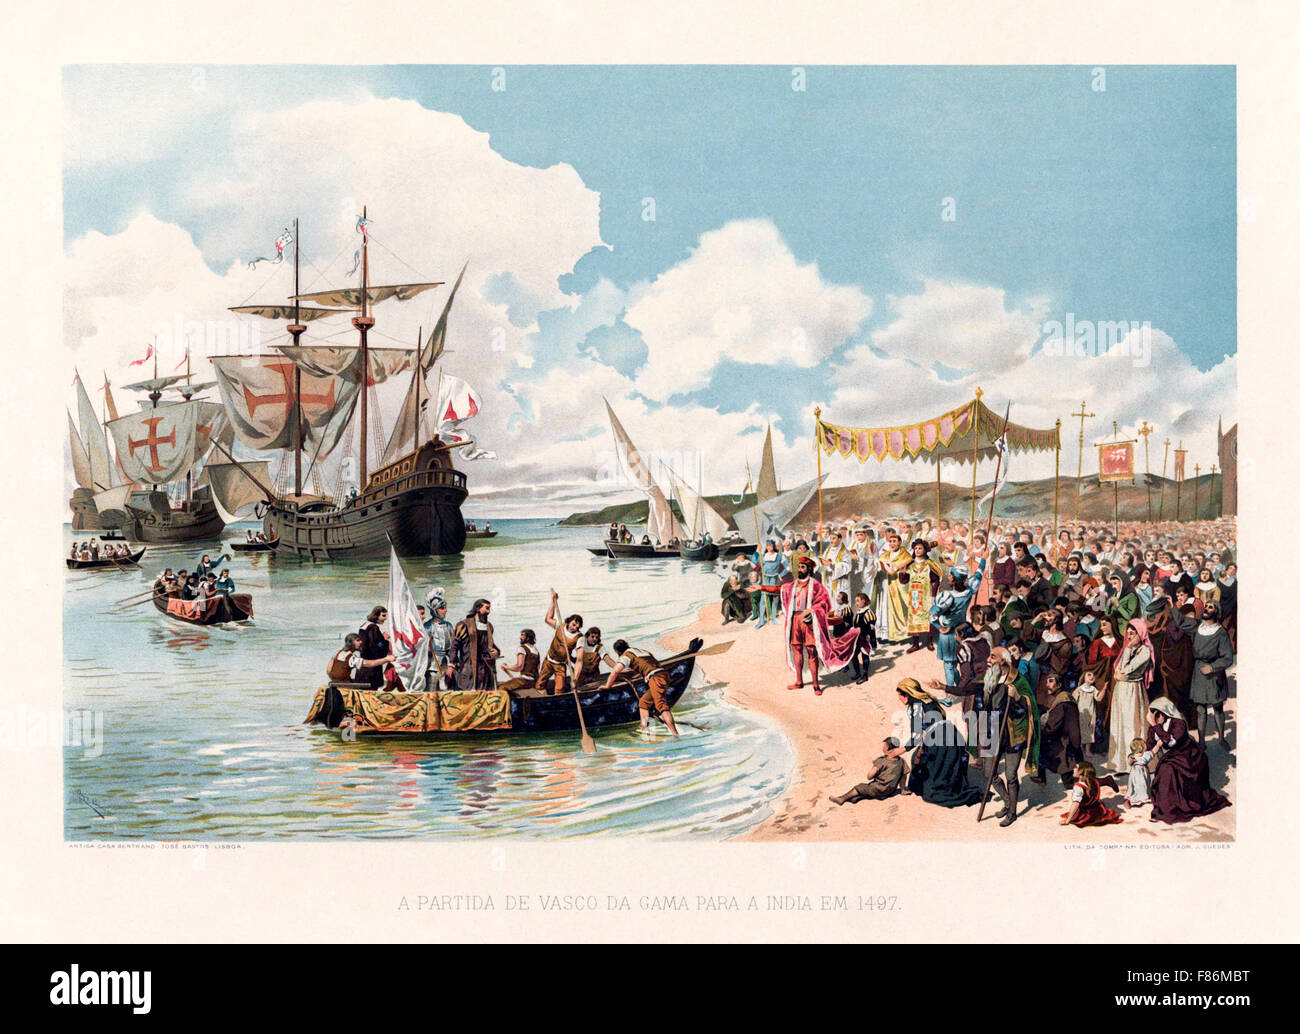 The departure of Vasco da Gama to India in 1497. On 8 July Vasco da Gama  led a fleet of four ships with a crew of 170 men from Lisbon, Portugal.